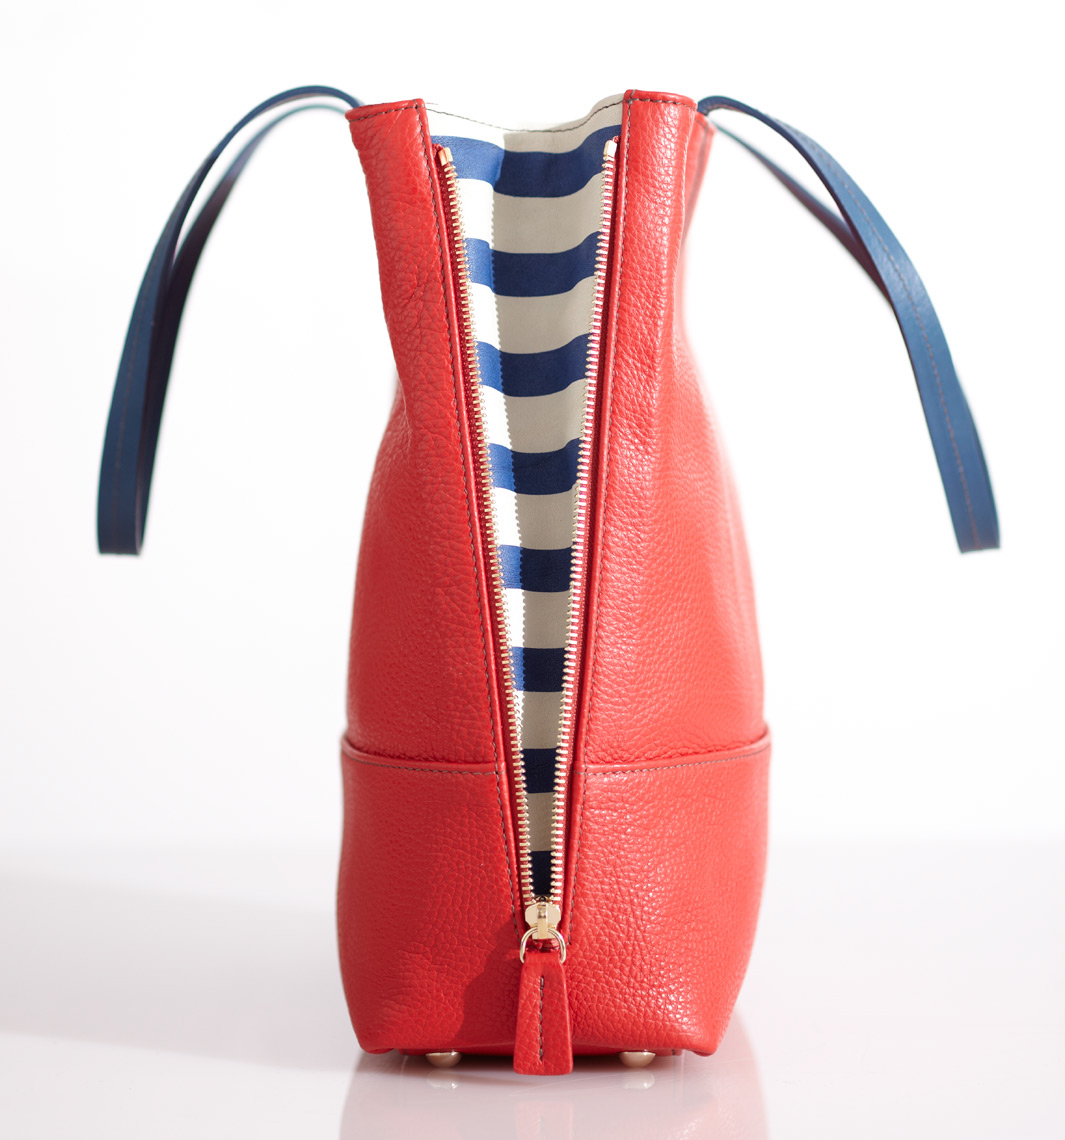 red zip-up handbag with blue handles and blue and white striped sides San Francisco product photographer